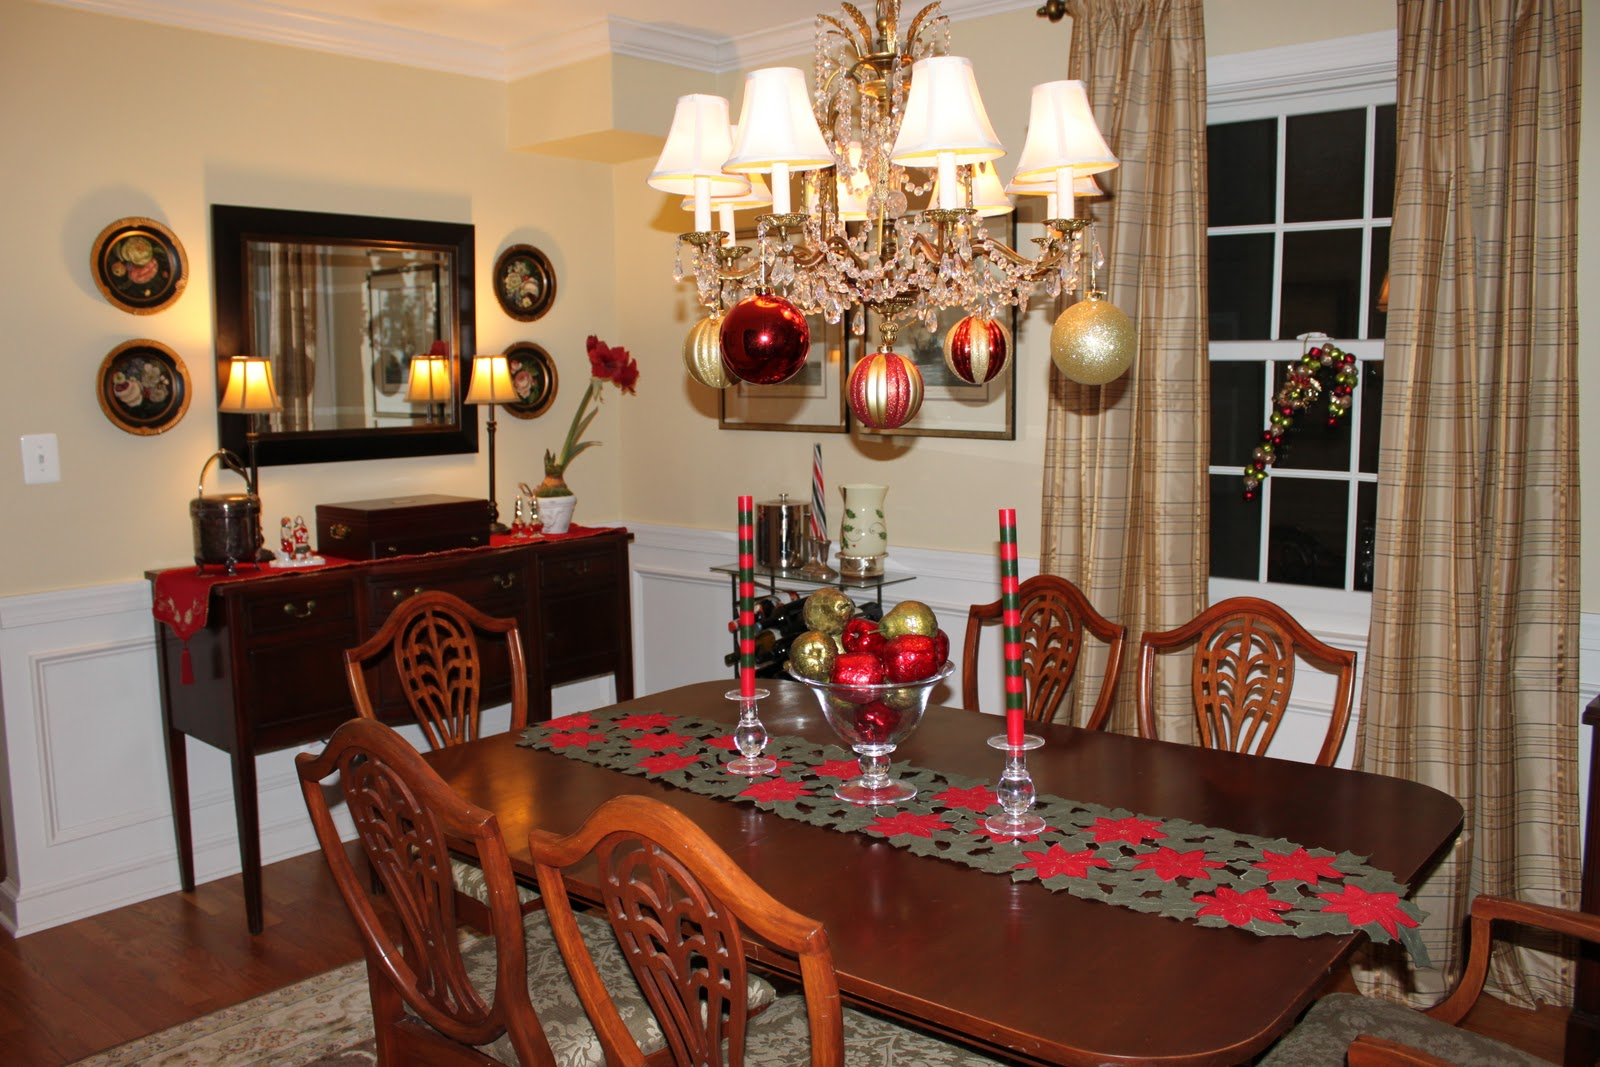 Houseography holidayography our budget christmas dining room - Christmas room decor ideas ...